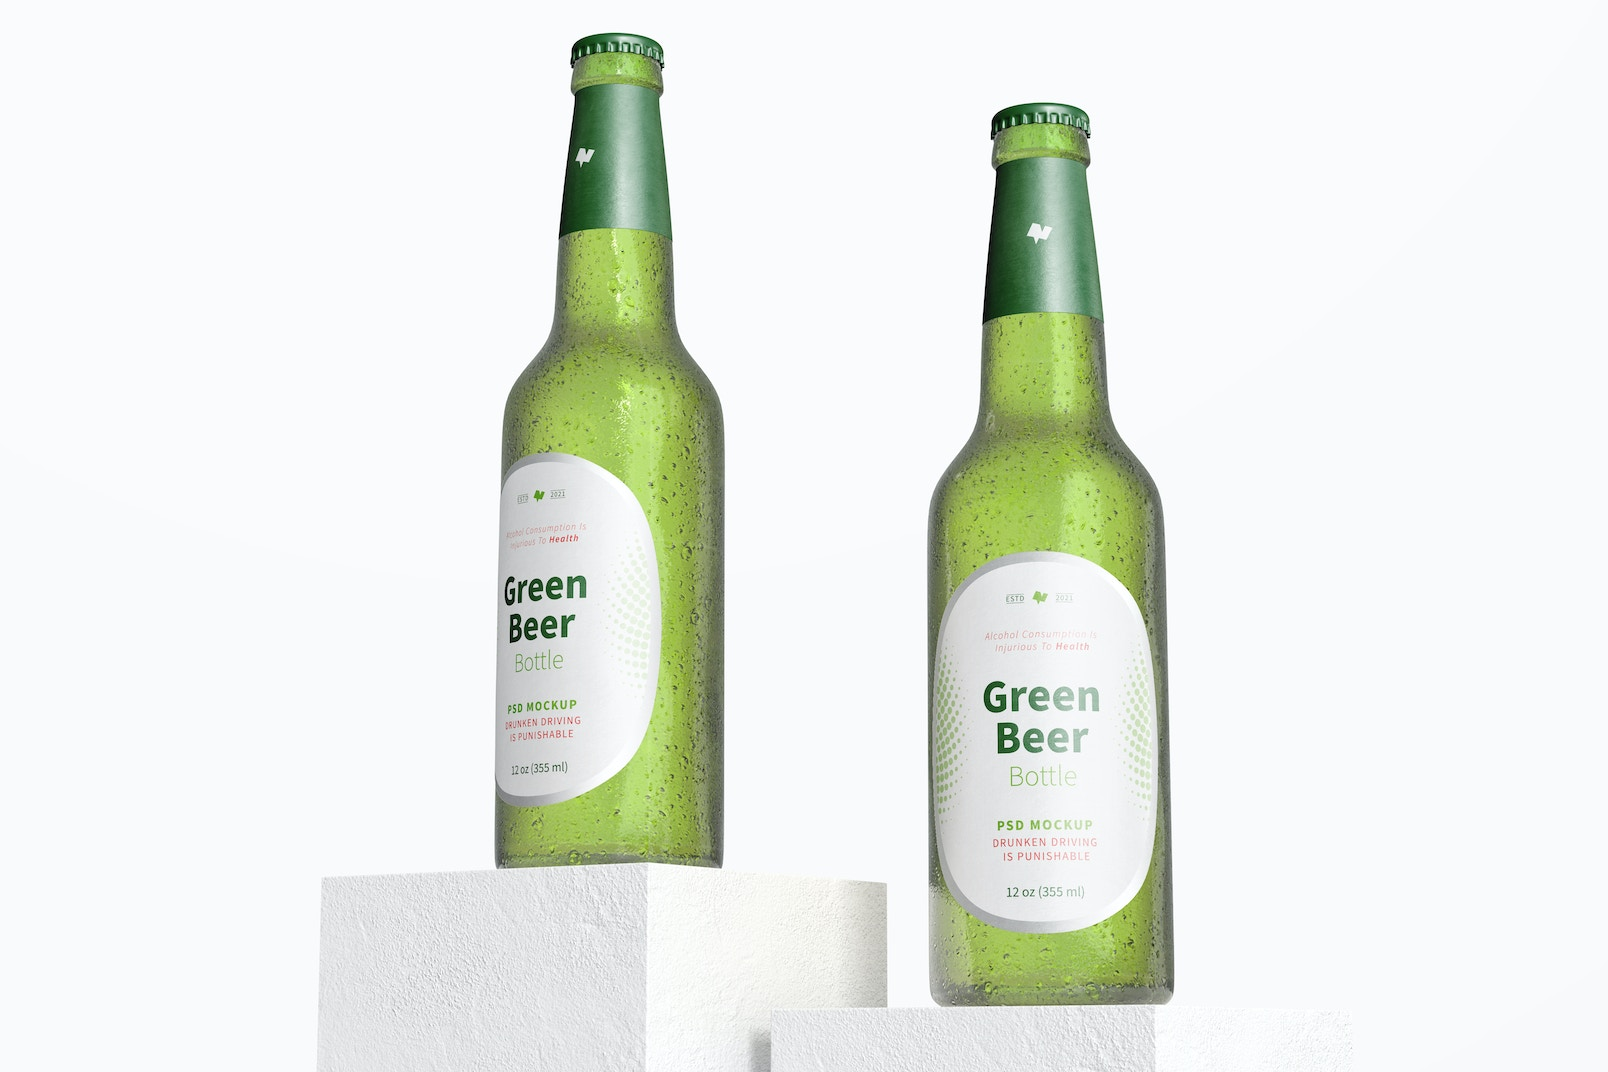 Green Beer Bottles Mockup, Low Angle View